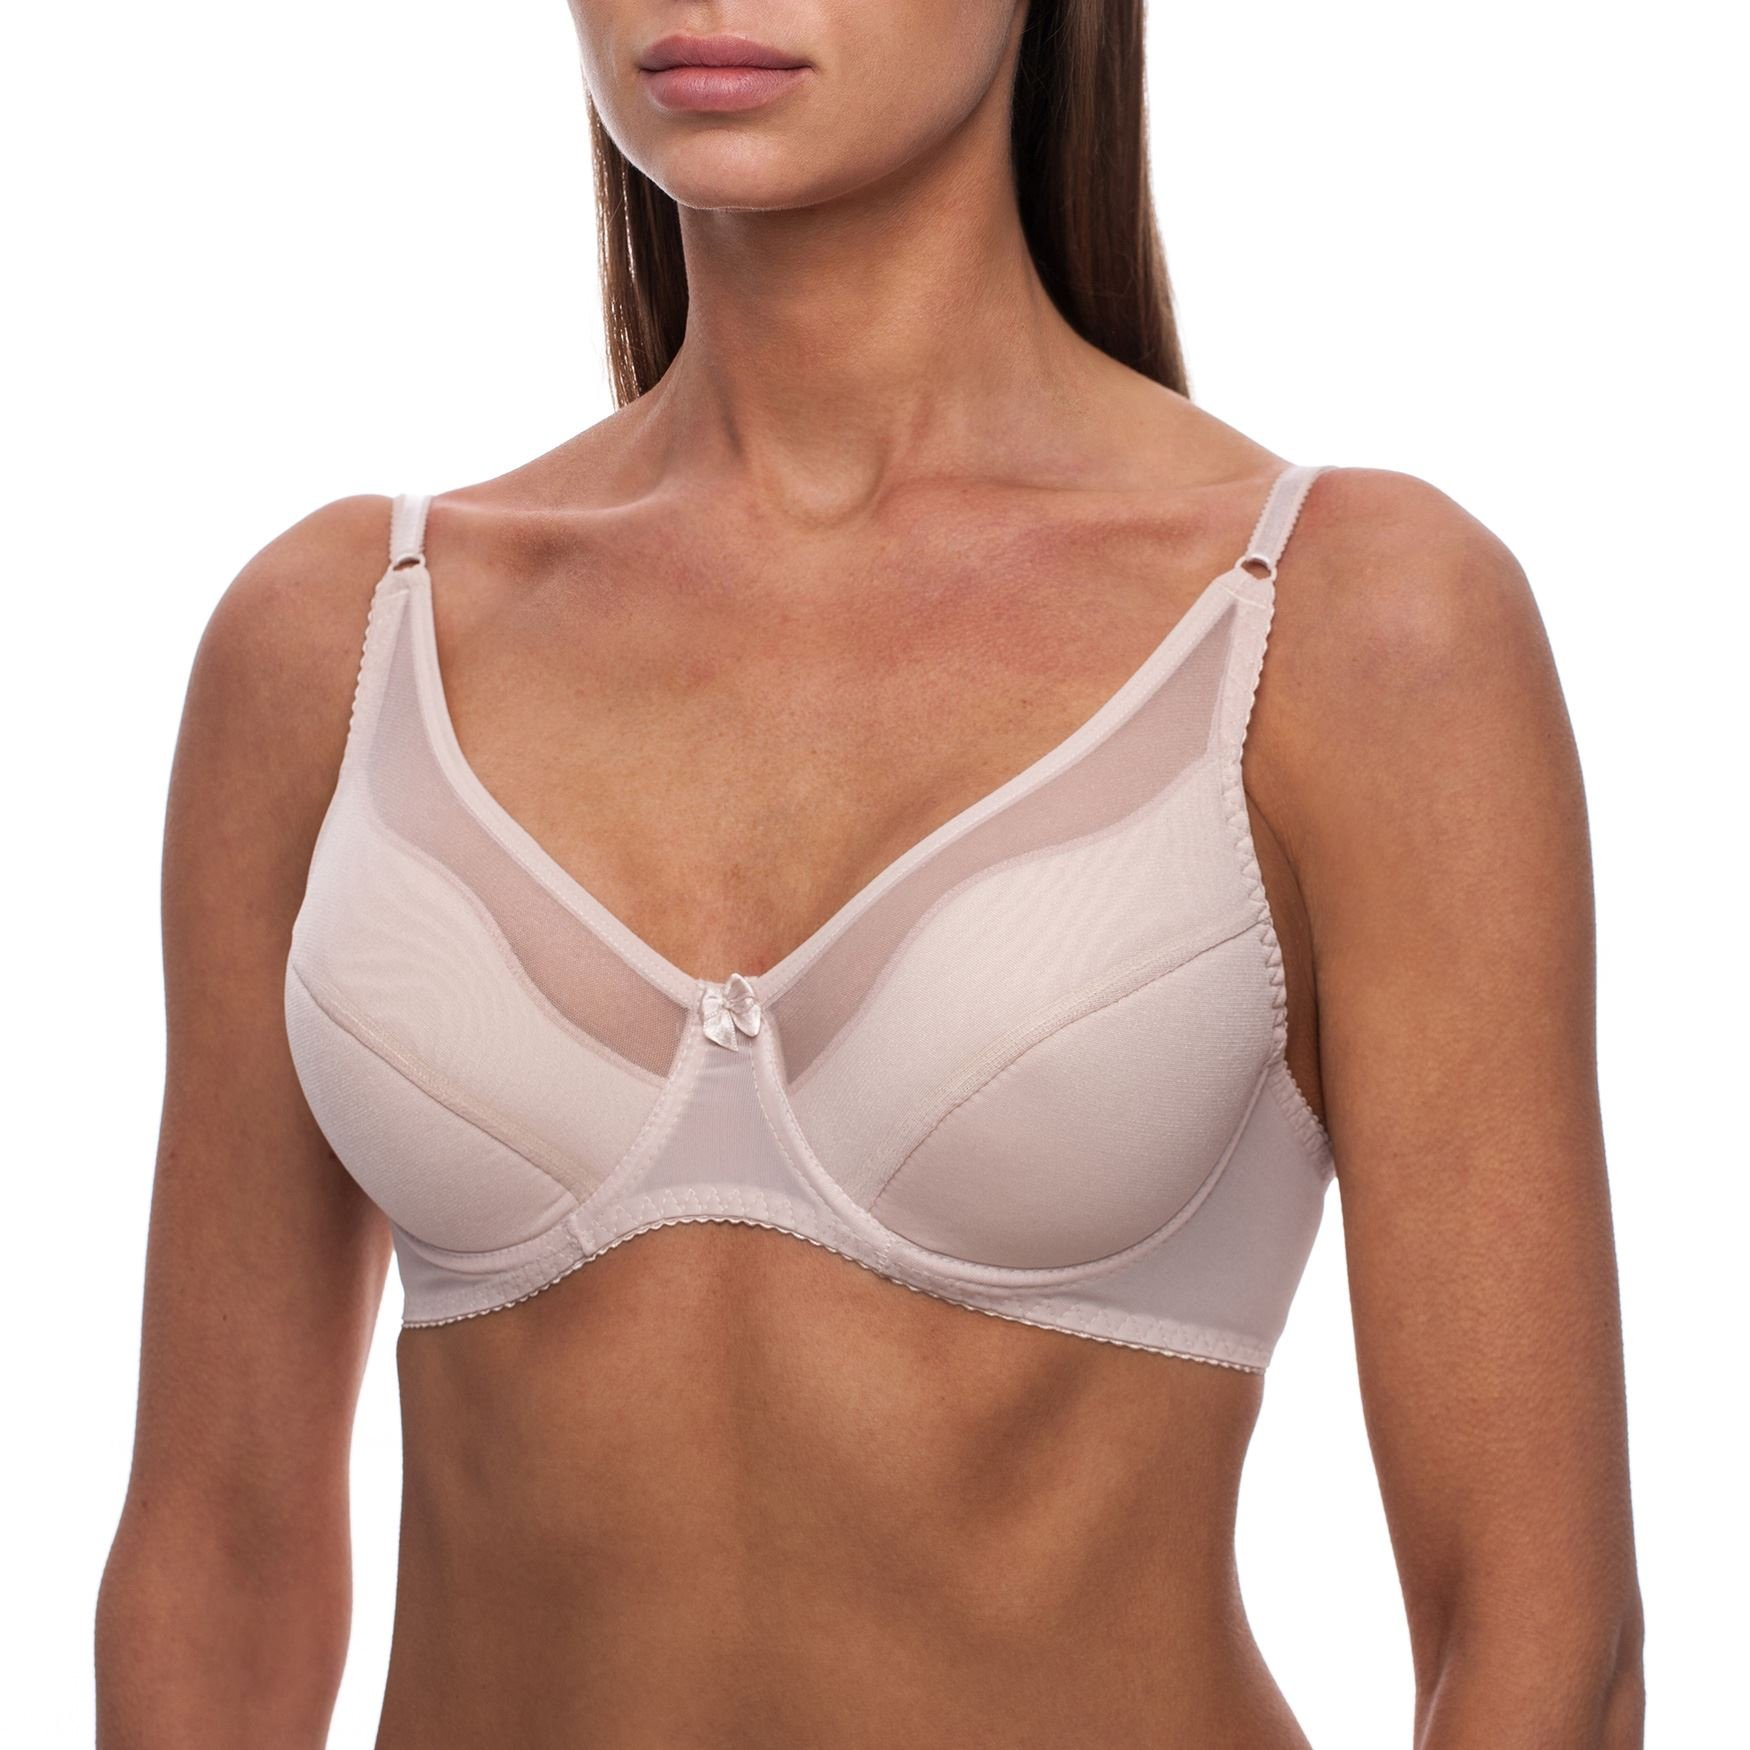 frugue Women's Underwire Full Coverage Plus Size Minimizer Padded Bra